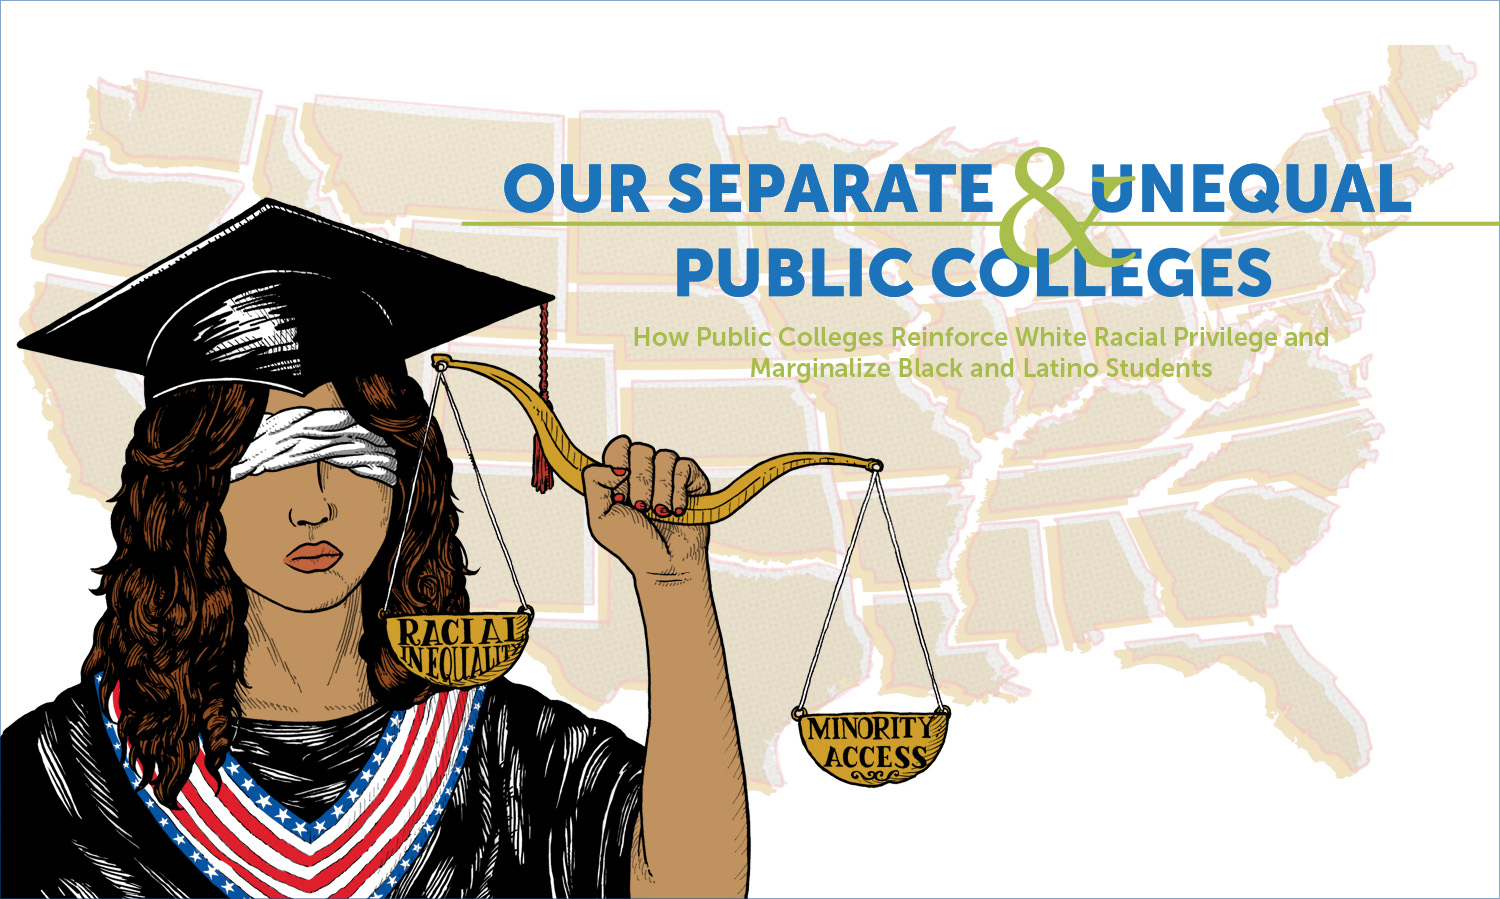 The Separate Unequal Education Of >> Our Separate Unequal Public Colleges